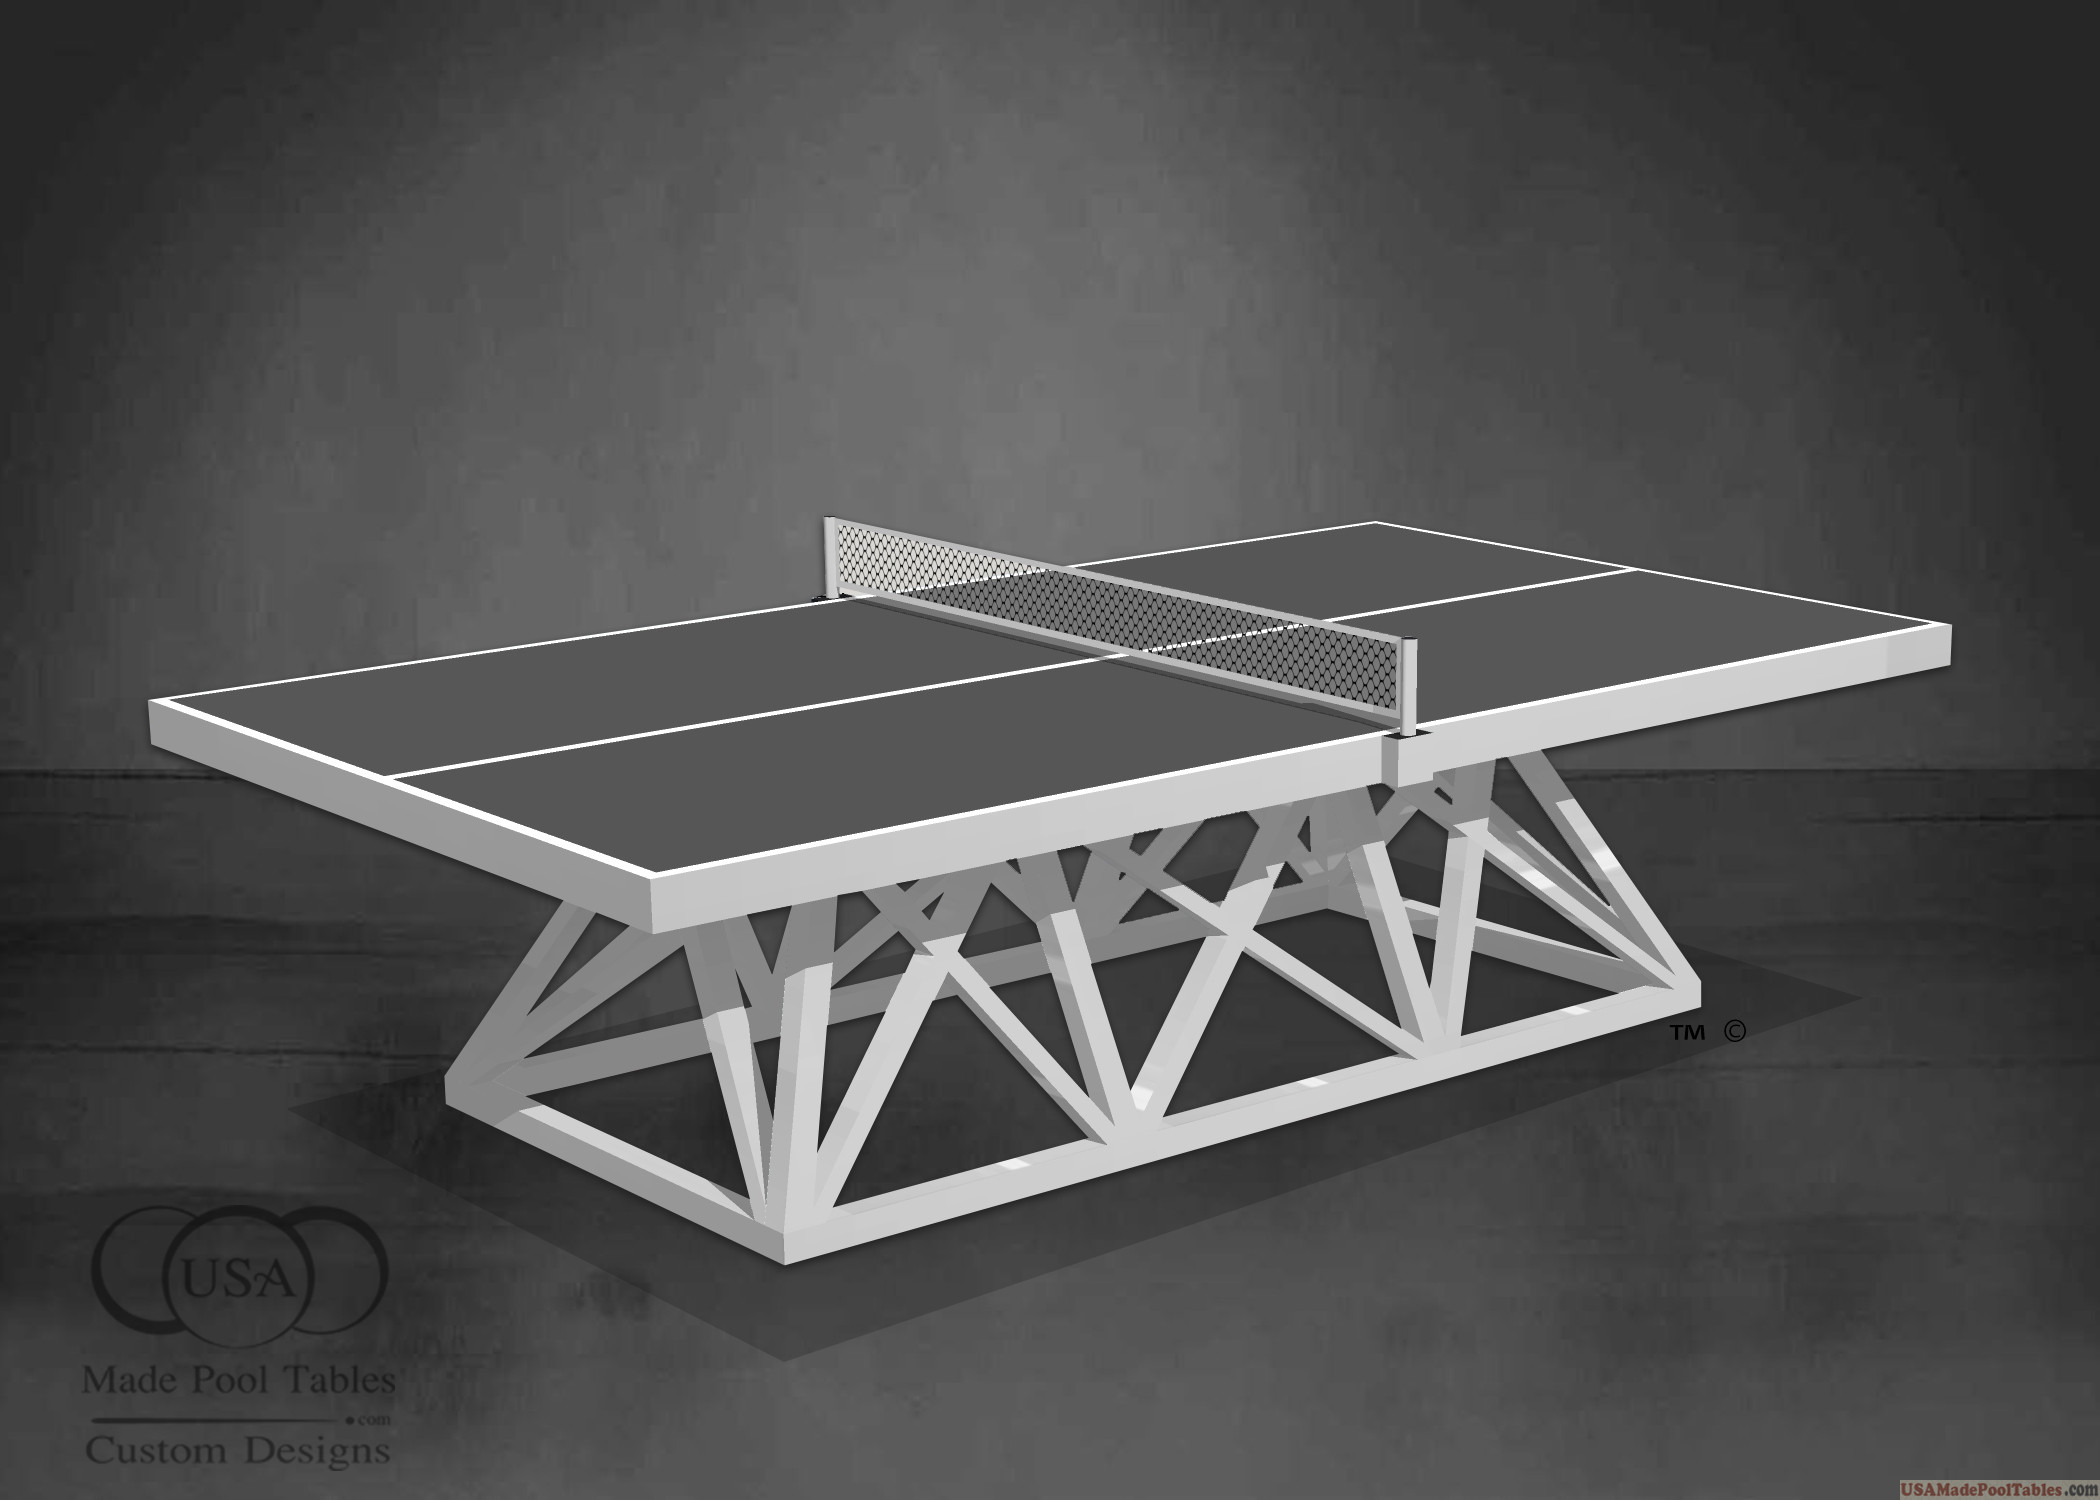 WHITE PING PONG TABLES : TENNIS TABLES